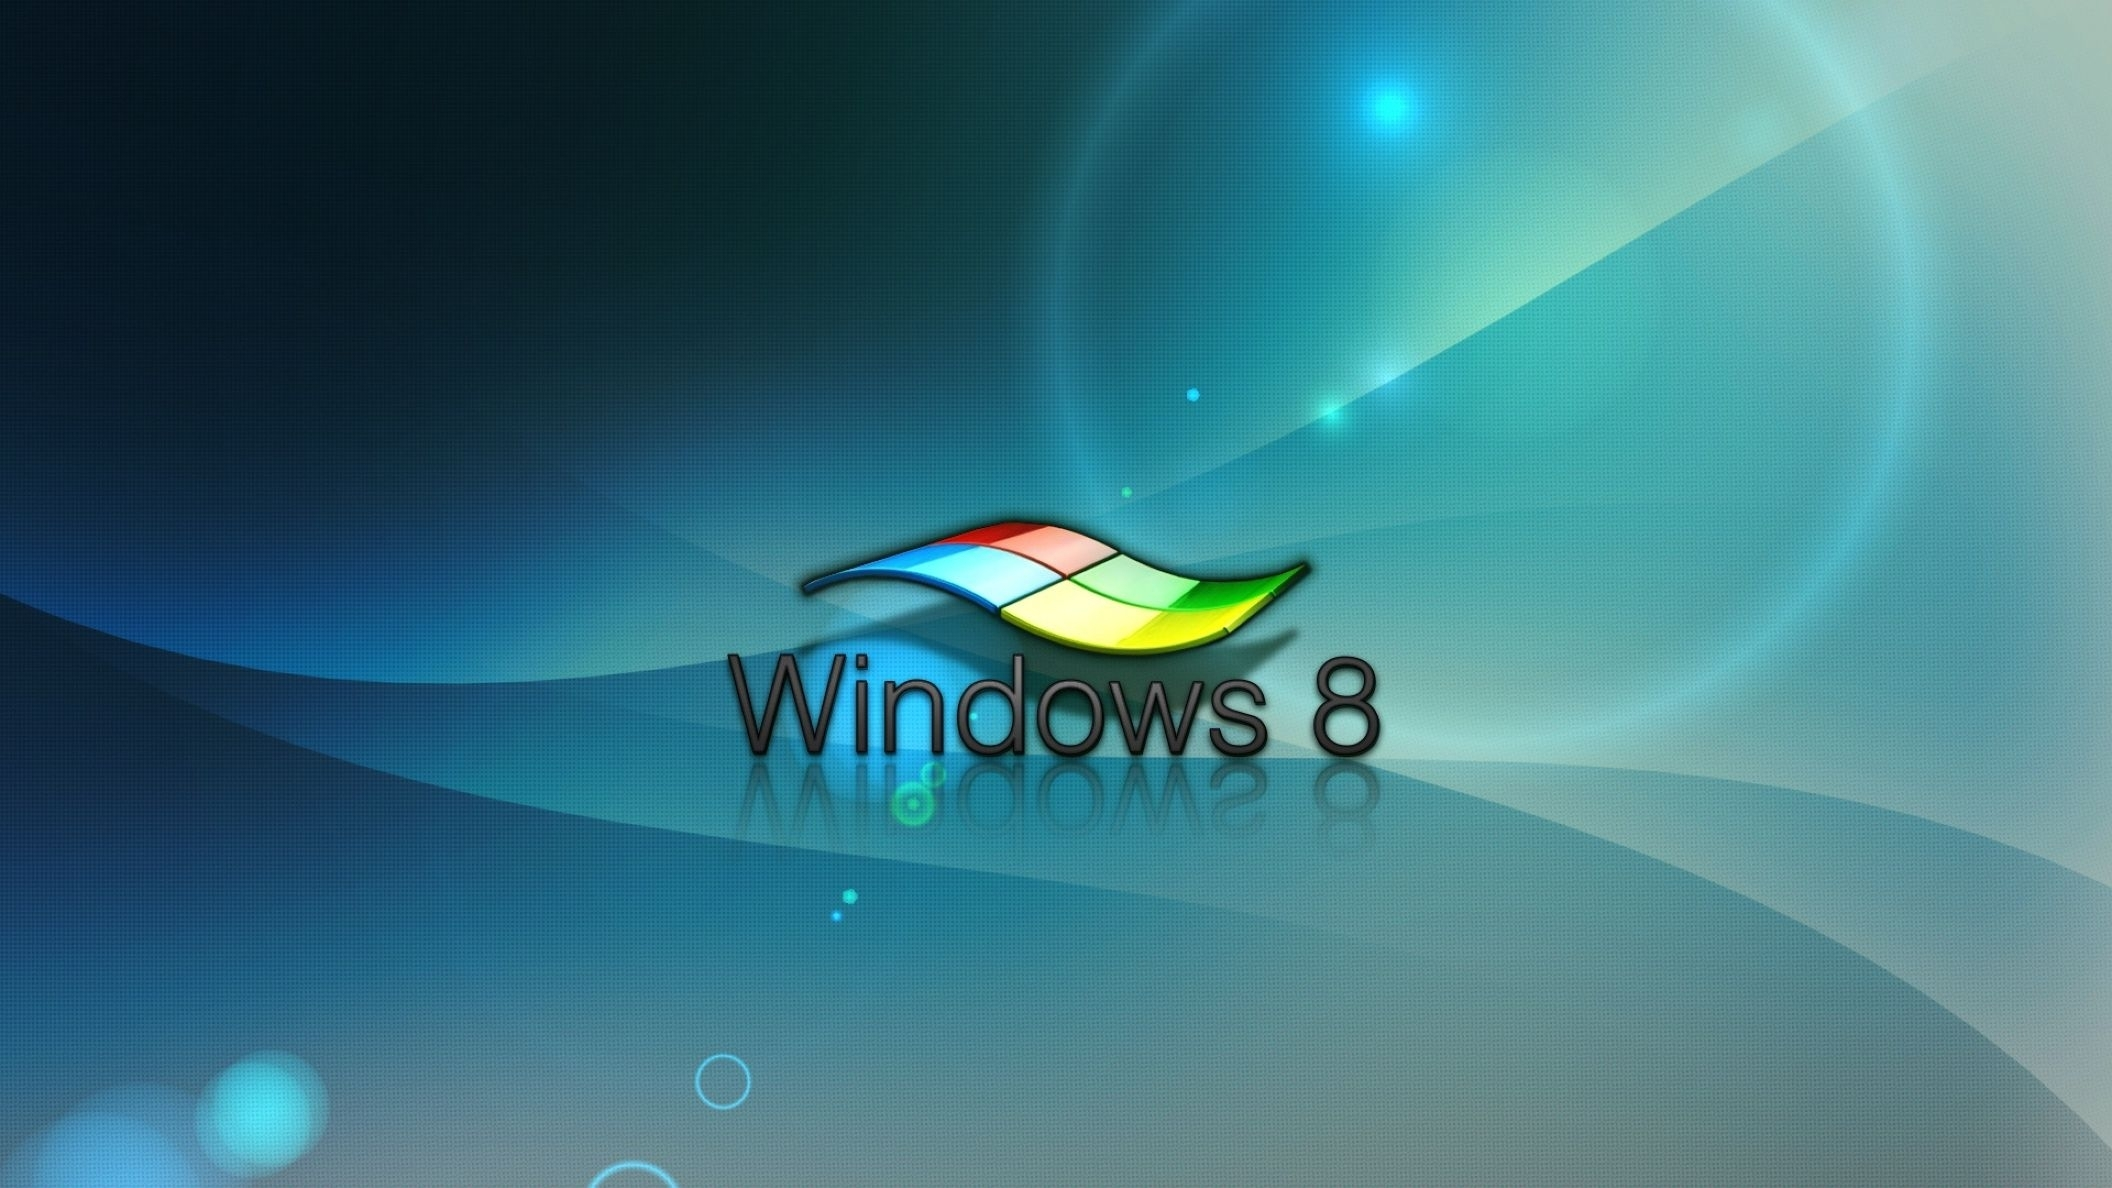 3d hd for windows 8 wallpaper: desktop hd wallpaper - download